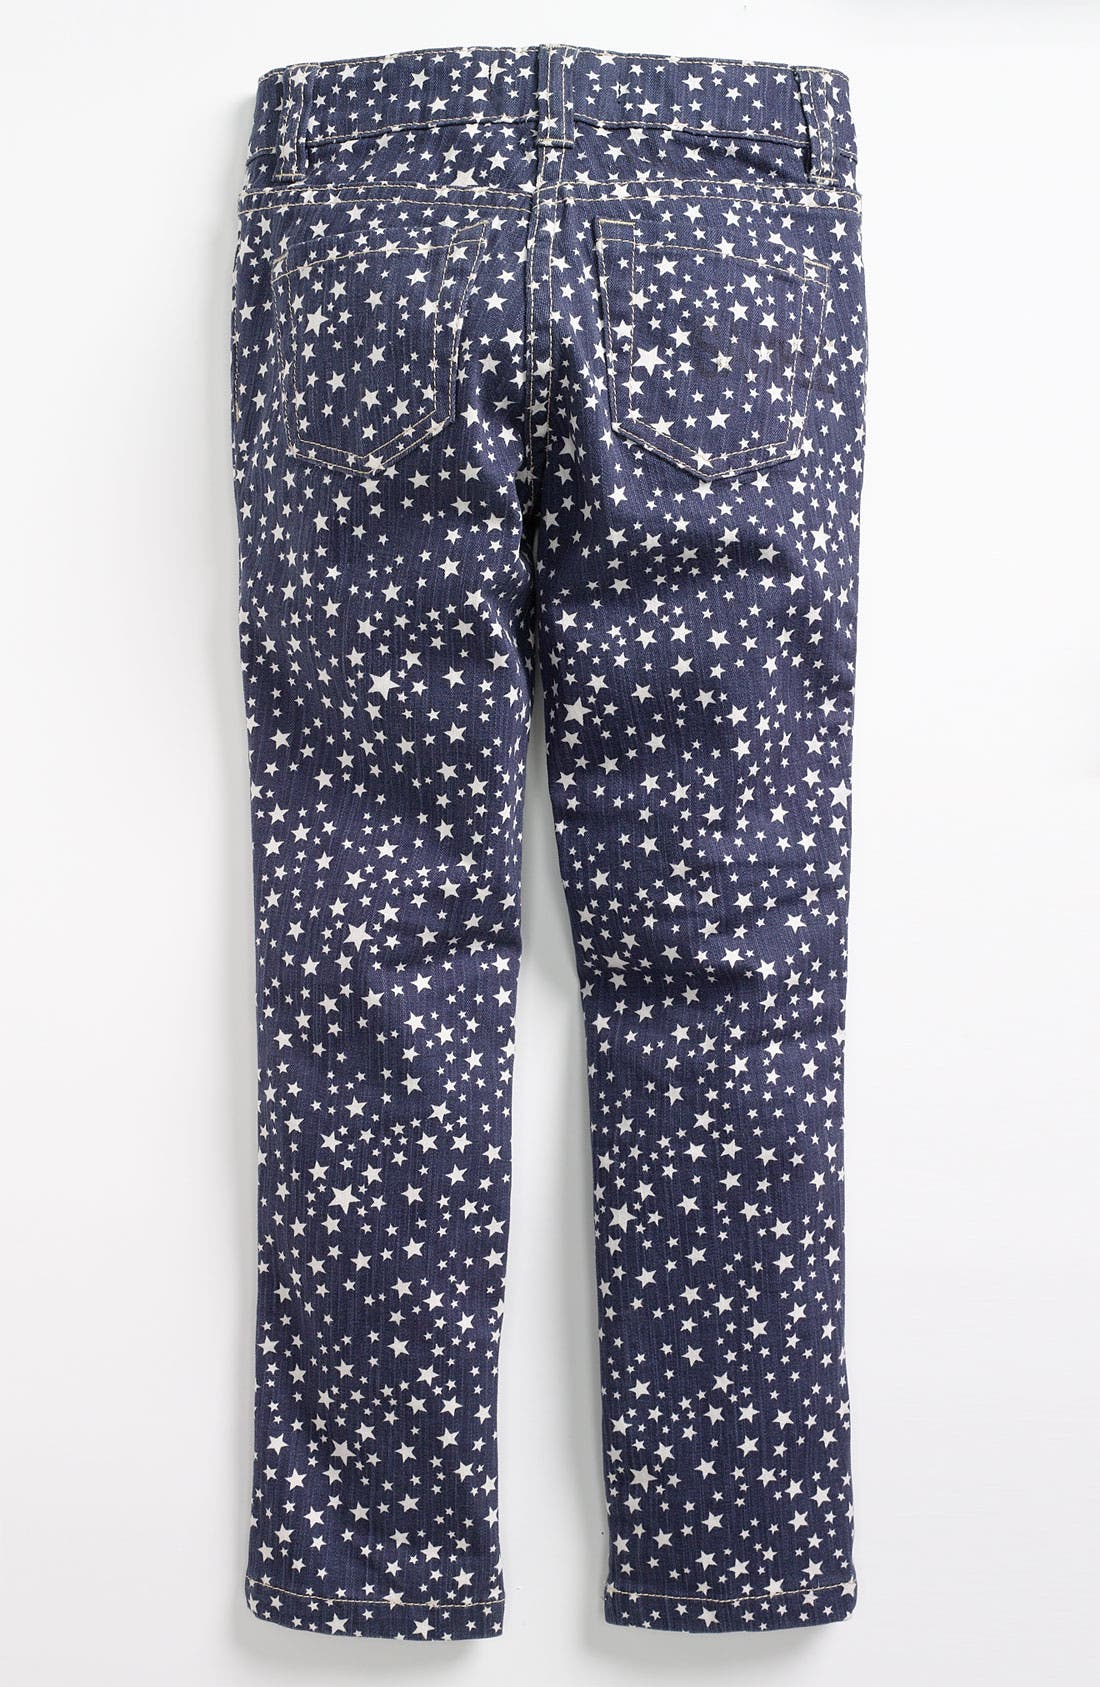 Alternate Image 1 Selected - Mini Boden Print Jeans (Toddler)